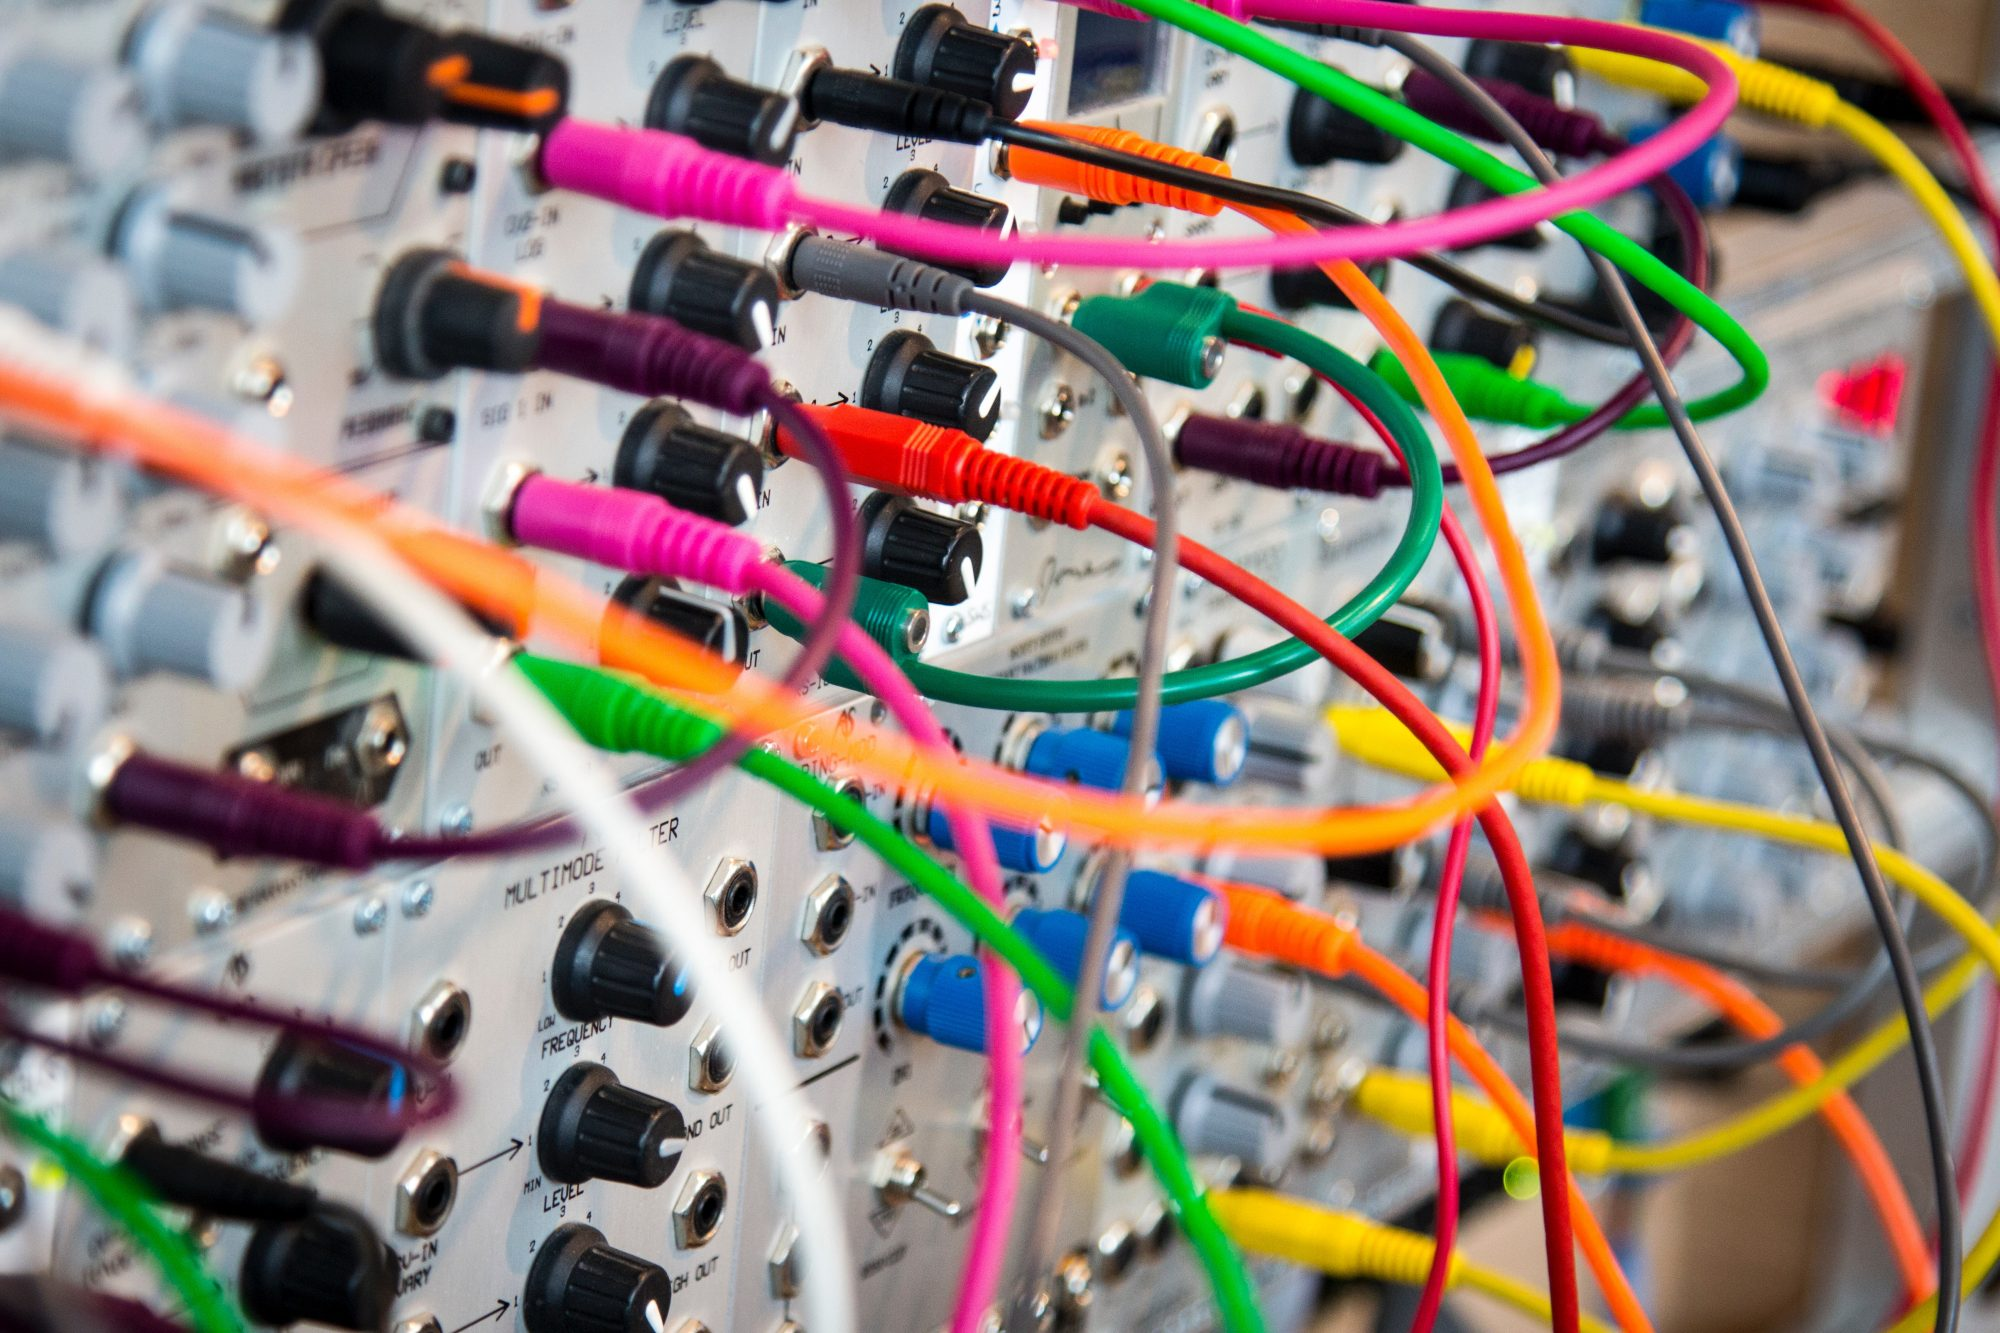 Complex board with wires